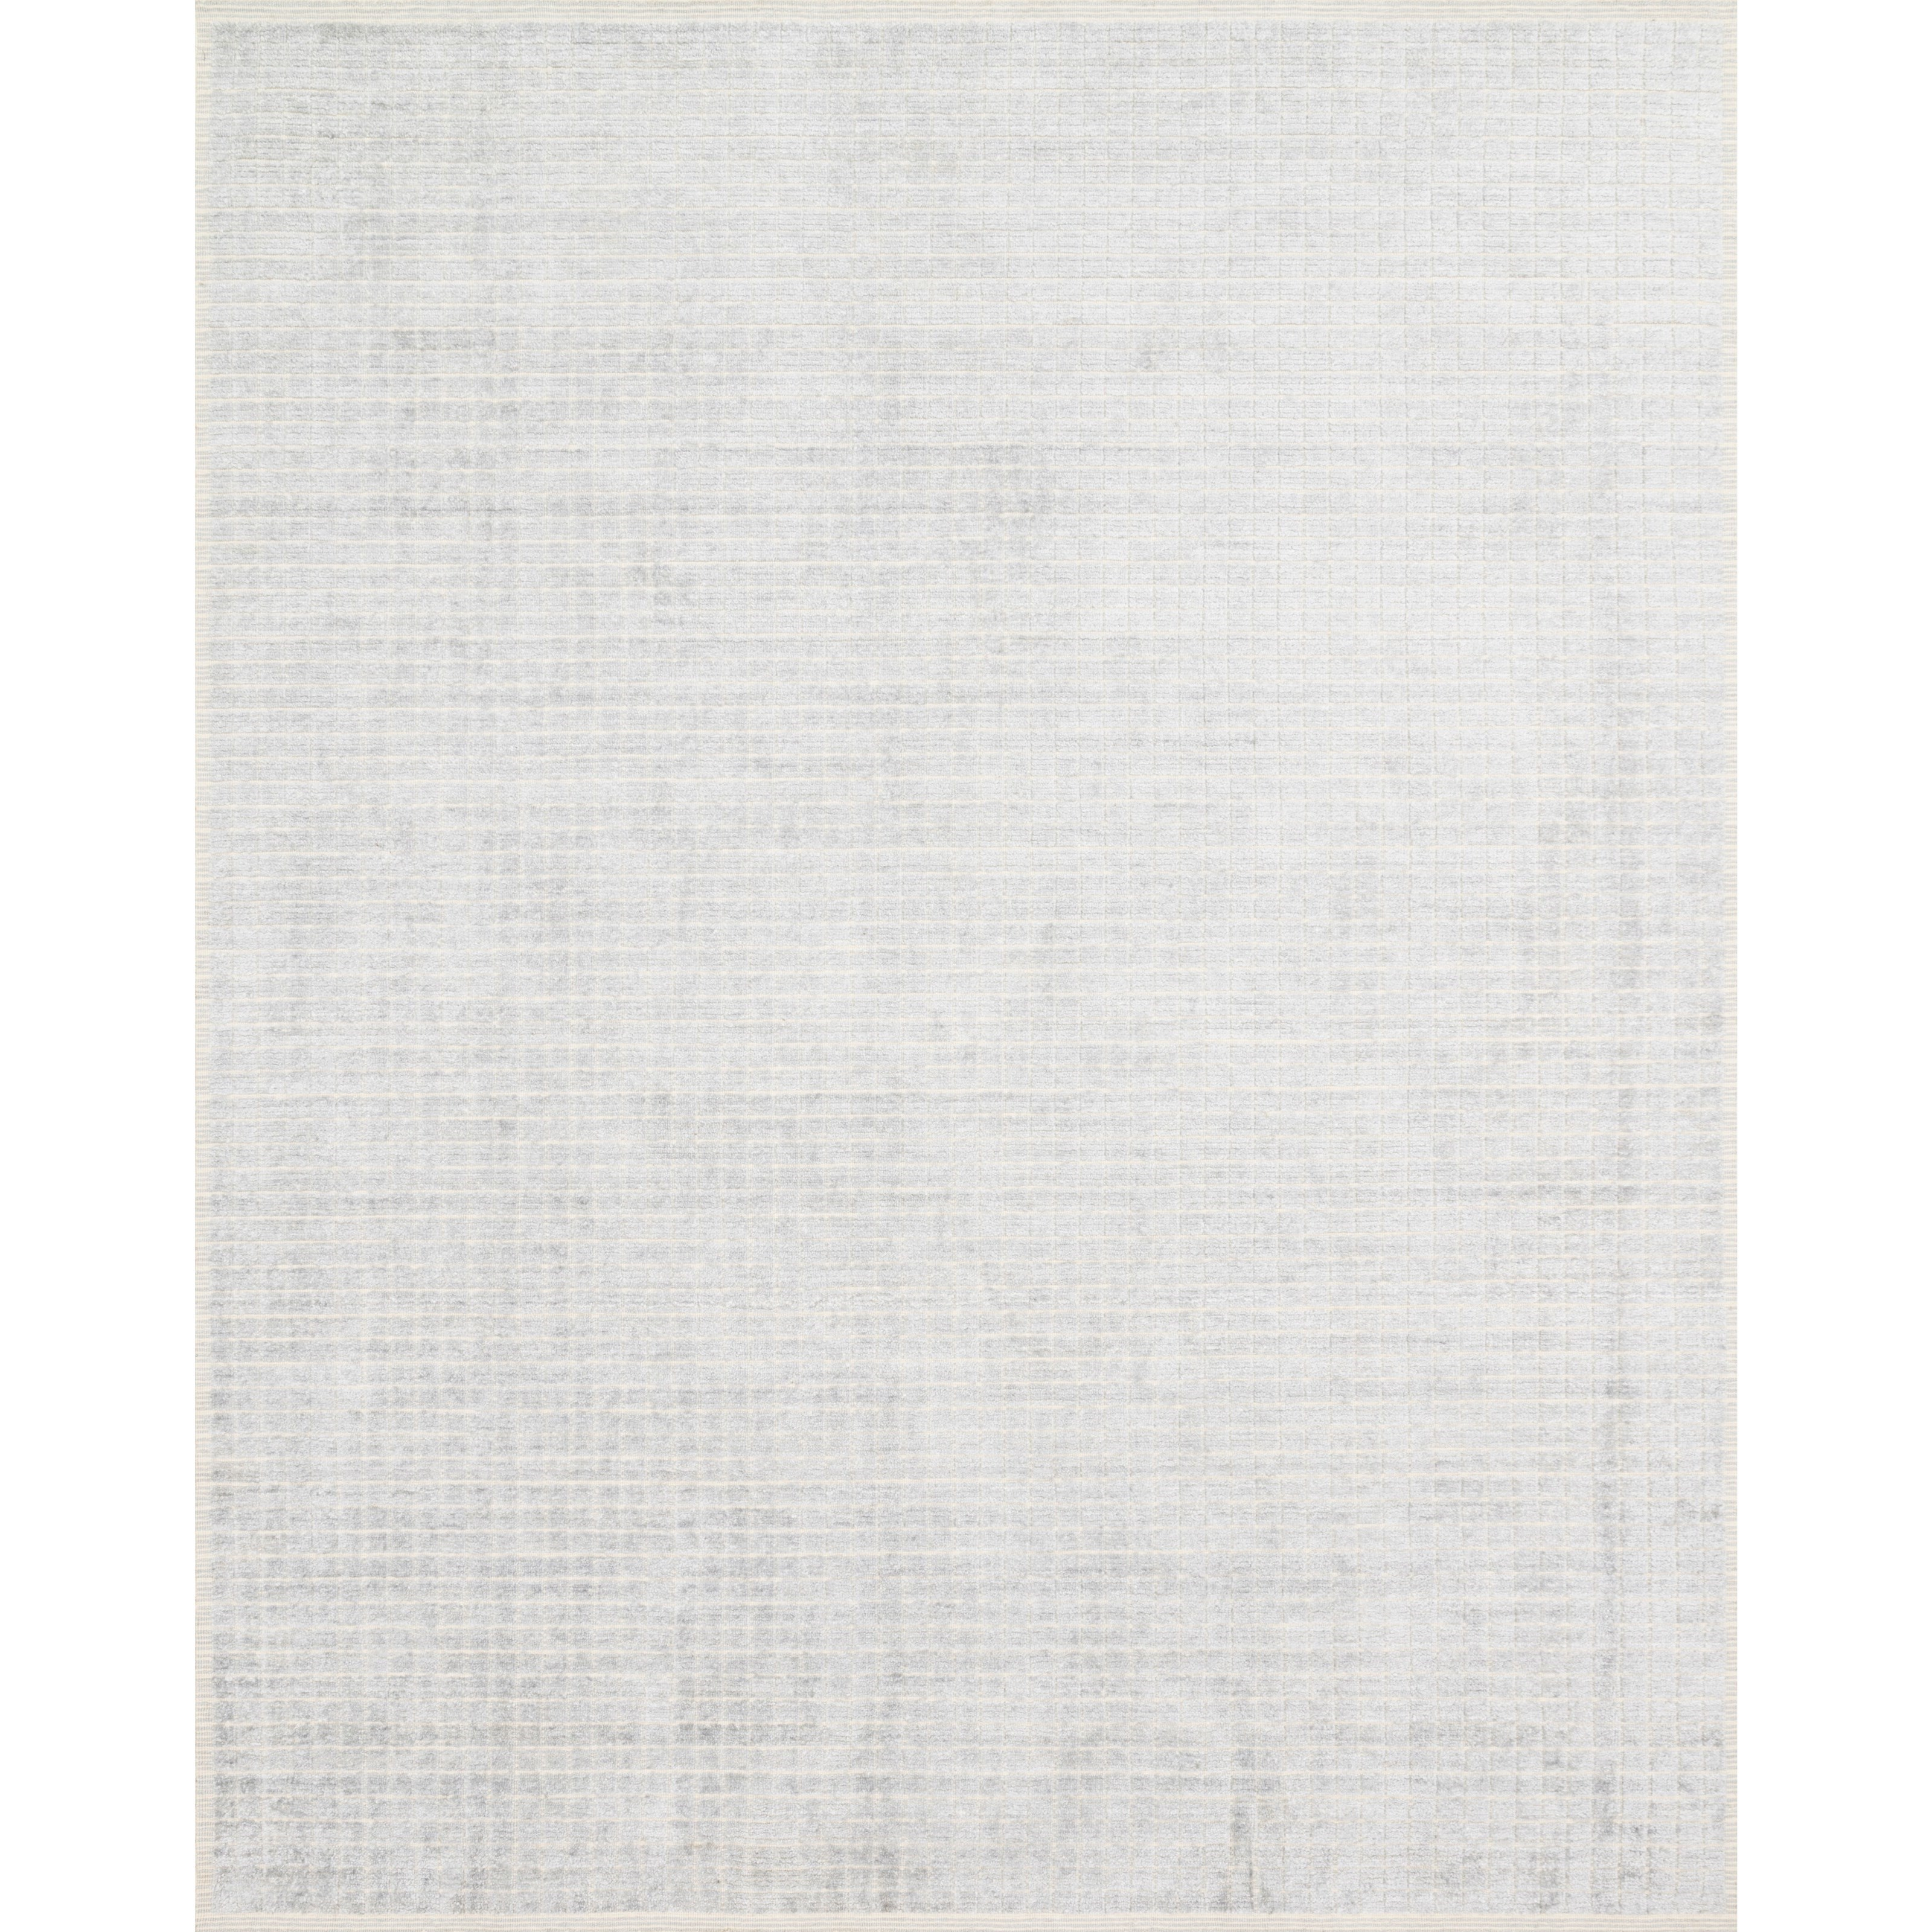 """Beverly 9'6"""" x 13'6"""" Silver / Sky Rug by Loloi Rugs at Virginia Furniture Market"""